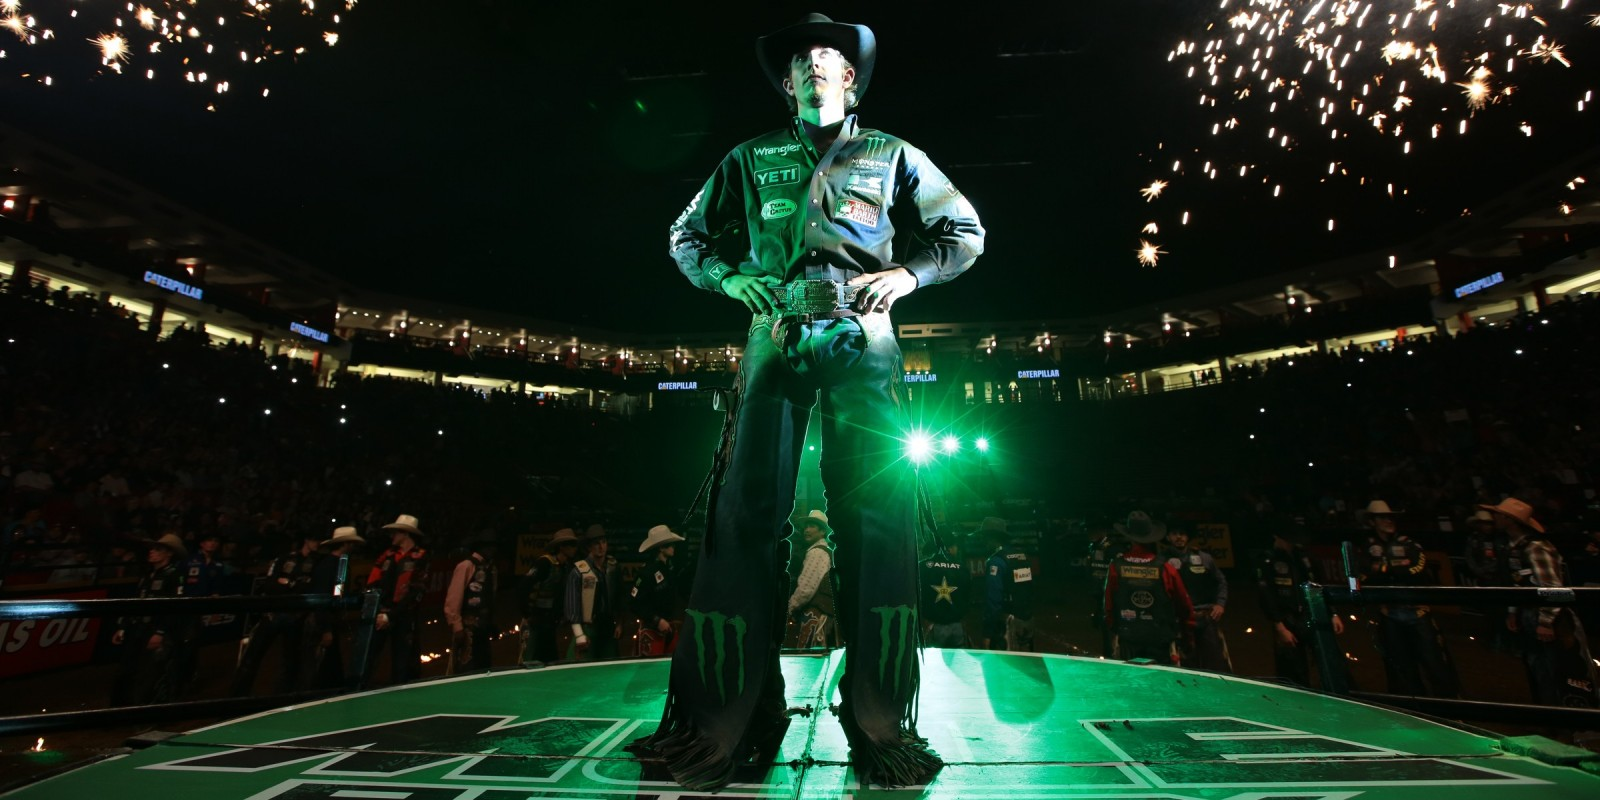 JB Mauney in the opening during the second round of the Albuquerque Built Ford Tough Series PBR